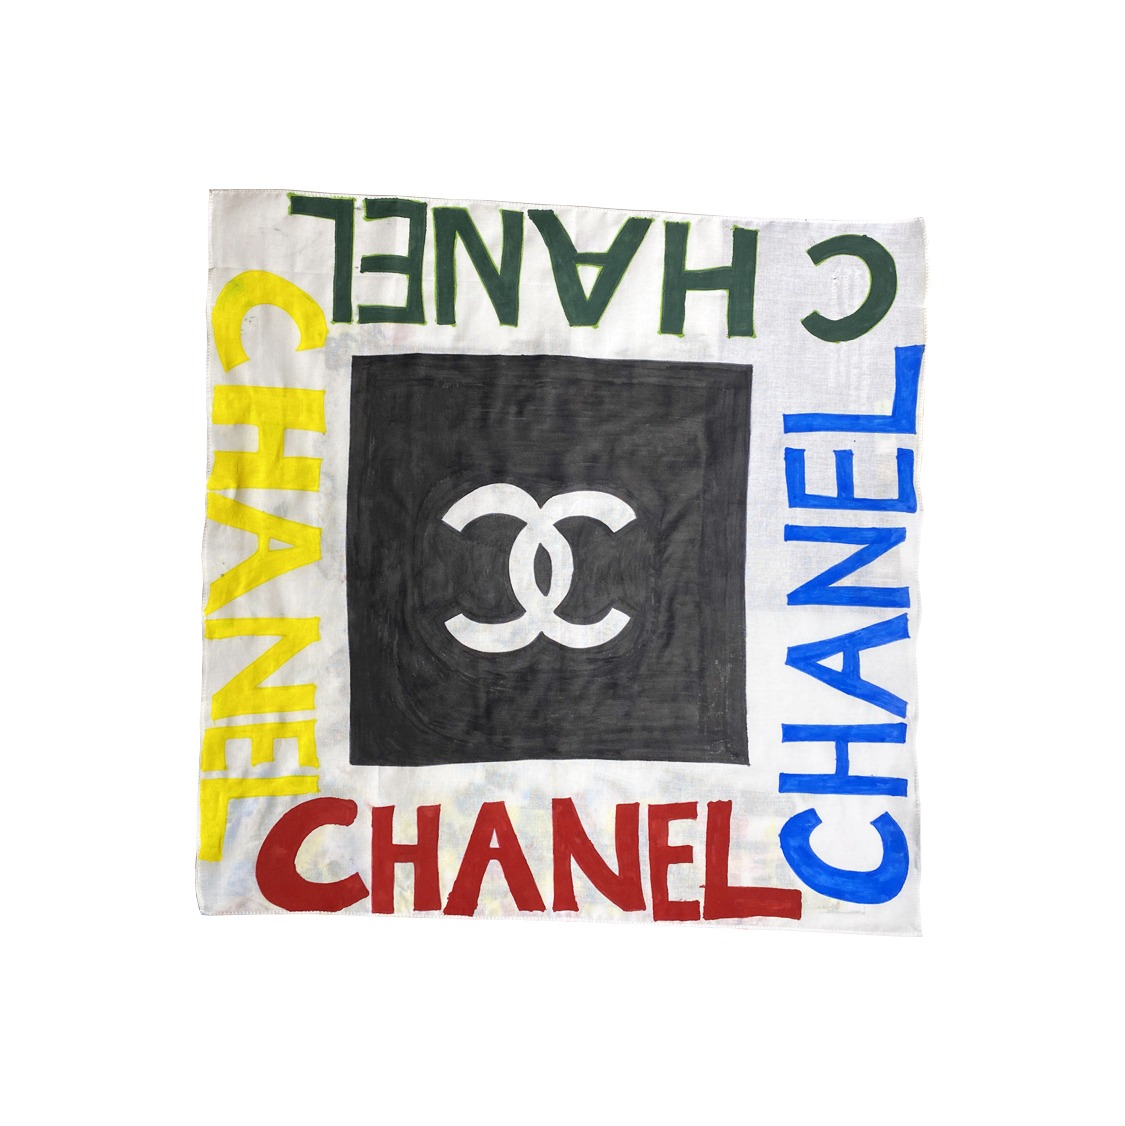 Underage chanel scarf product